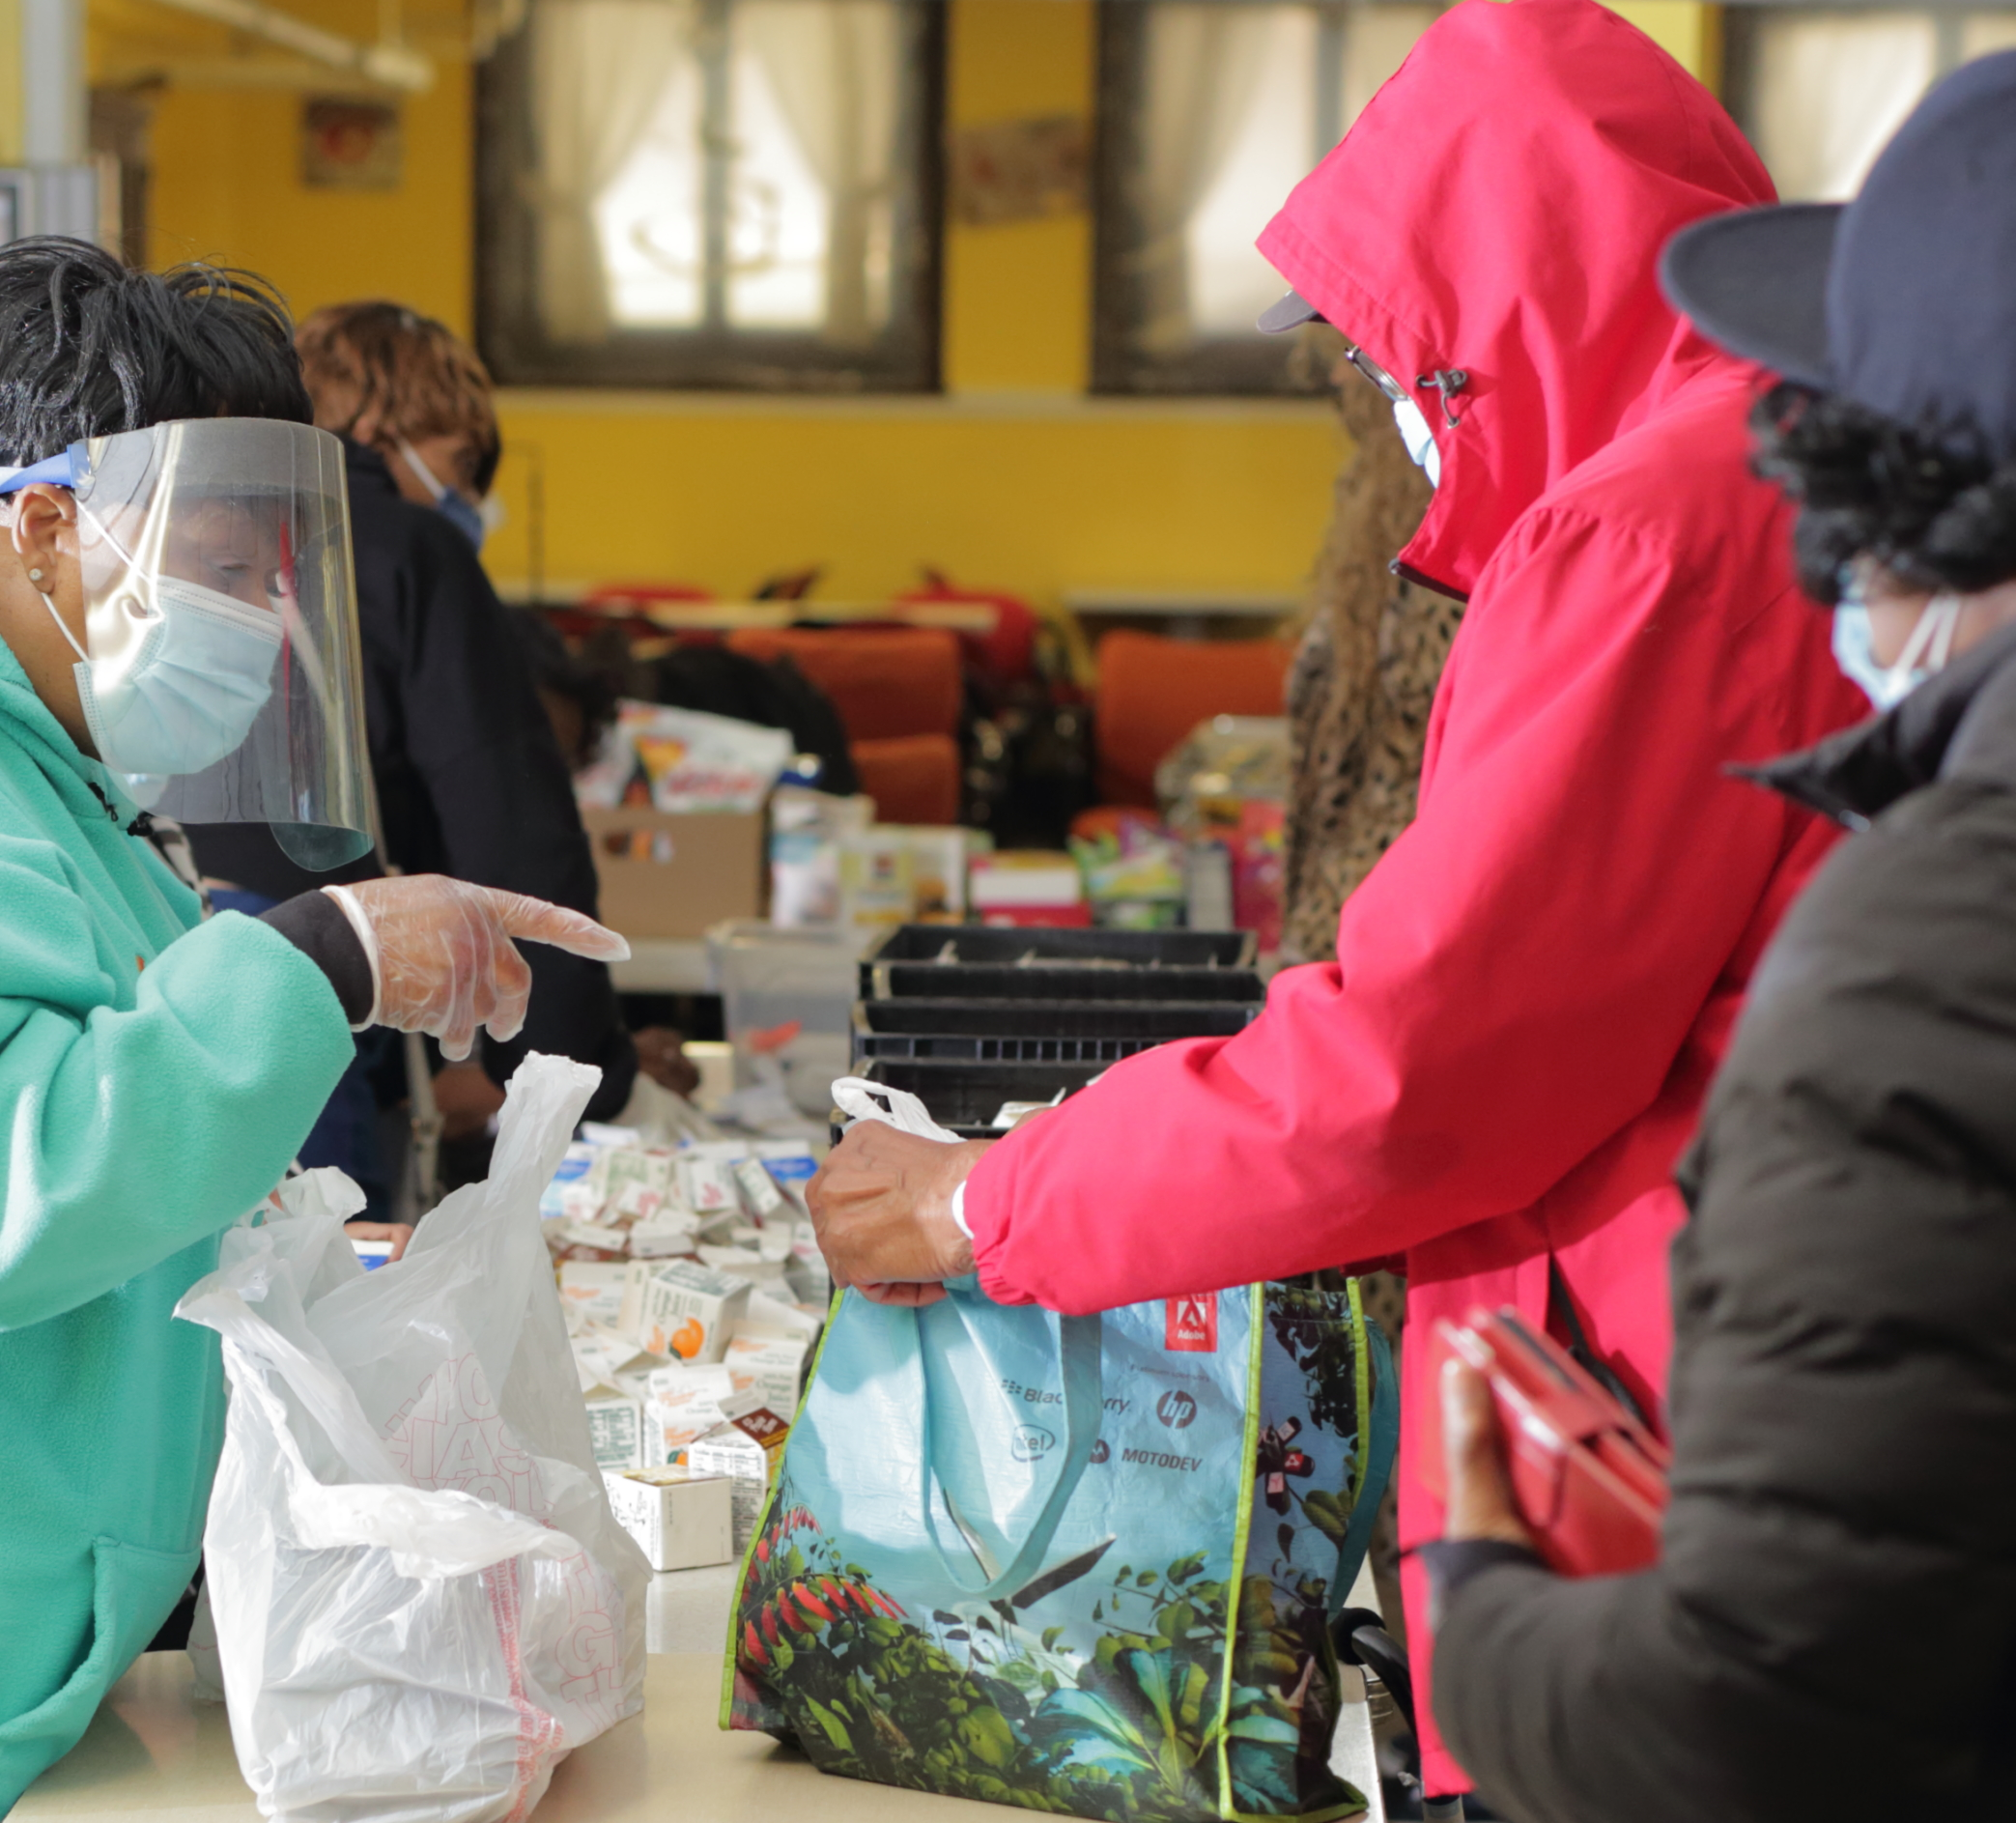 Individuals getting food to fill their reusable bags and DAAA volunteers helping to give out items   Image of a DAAA volunteer scooping food with their protective gloves and masks on   DAAA's Congregate Meal Program